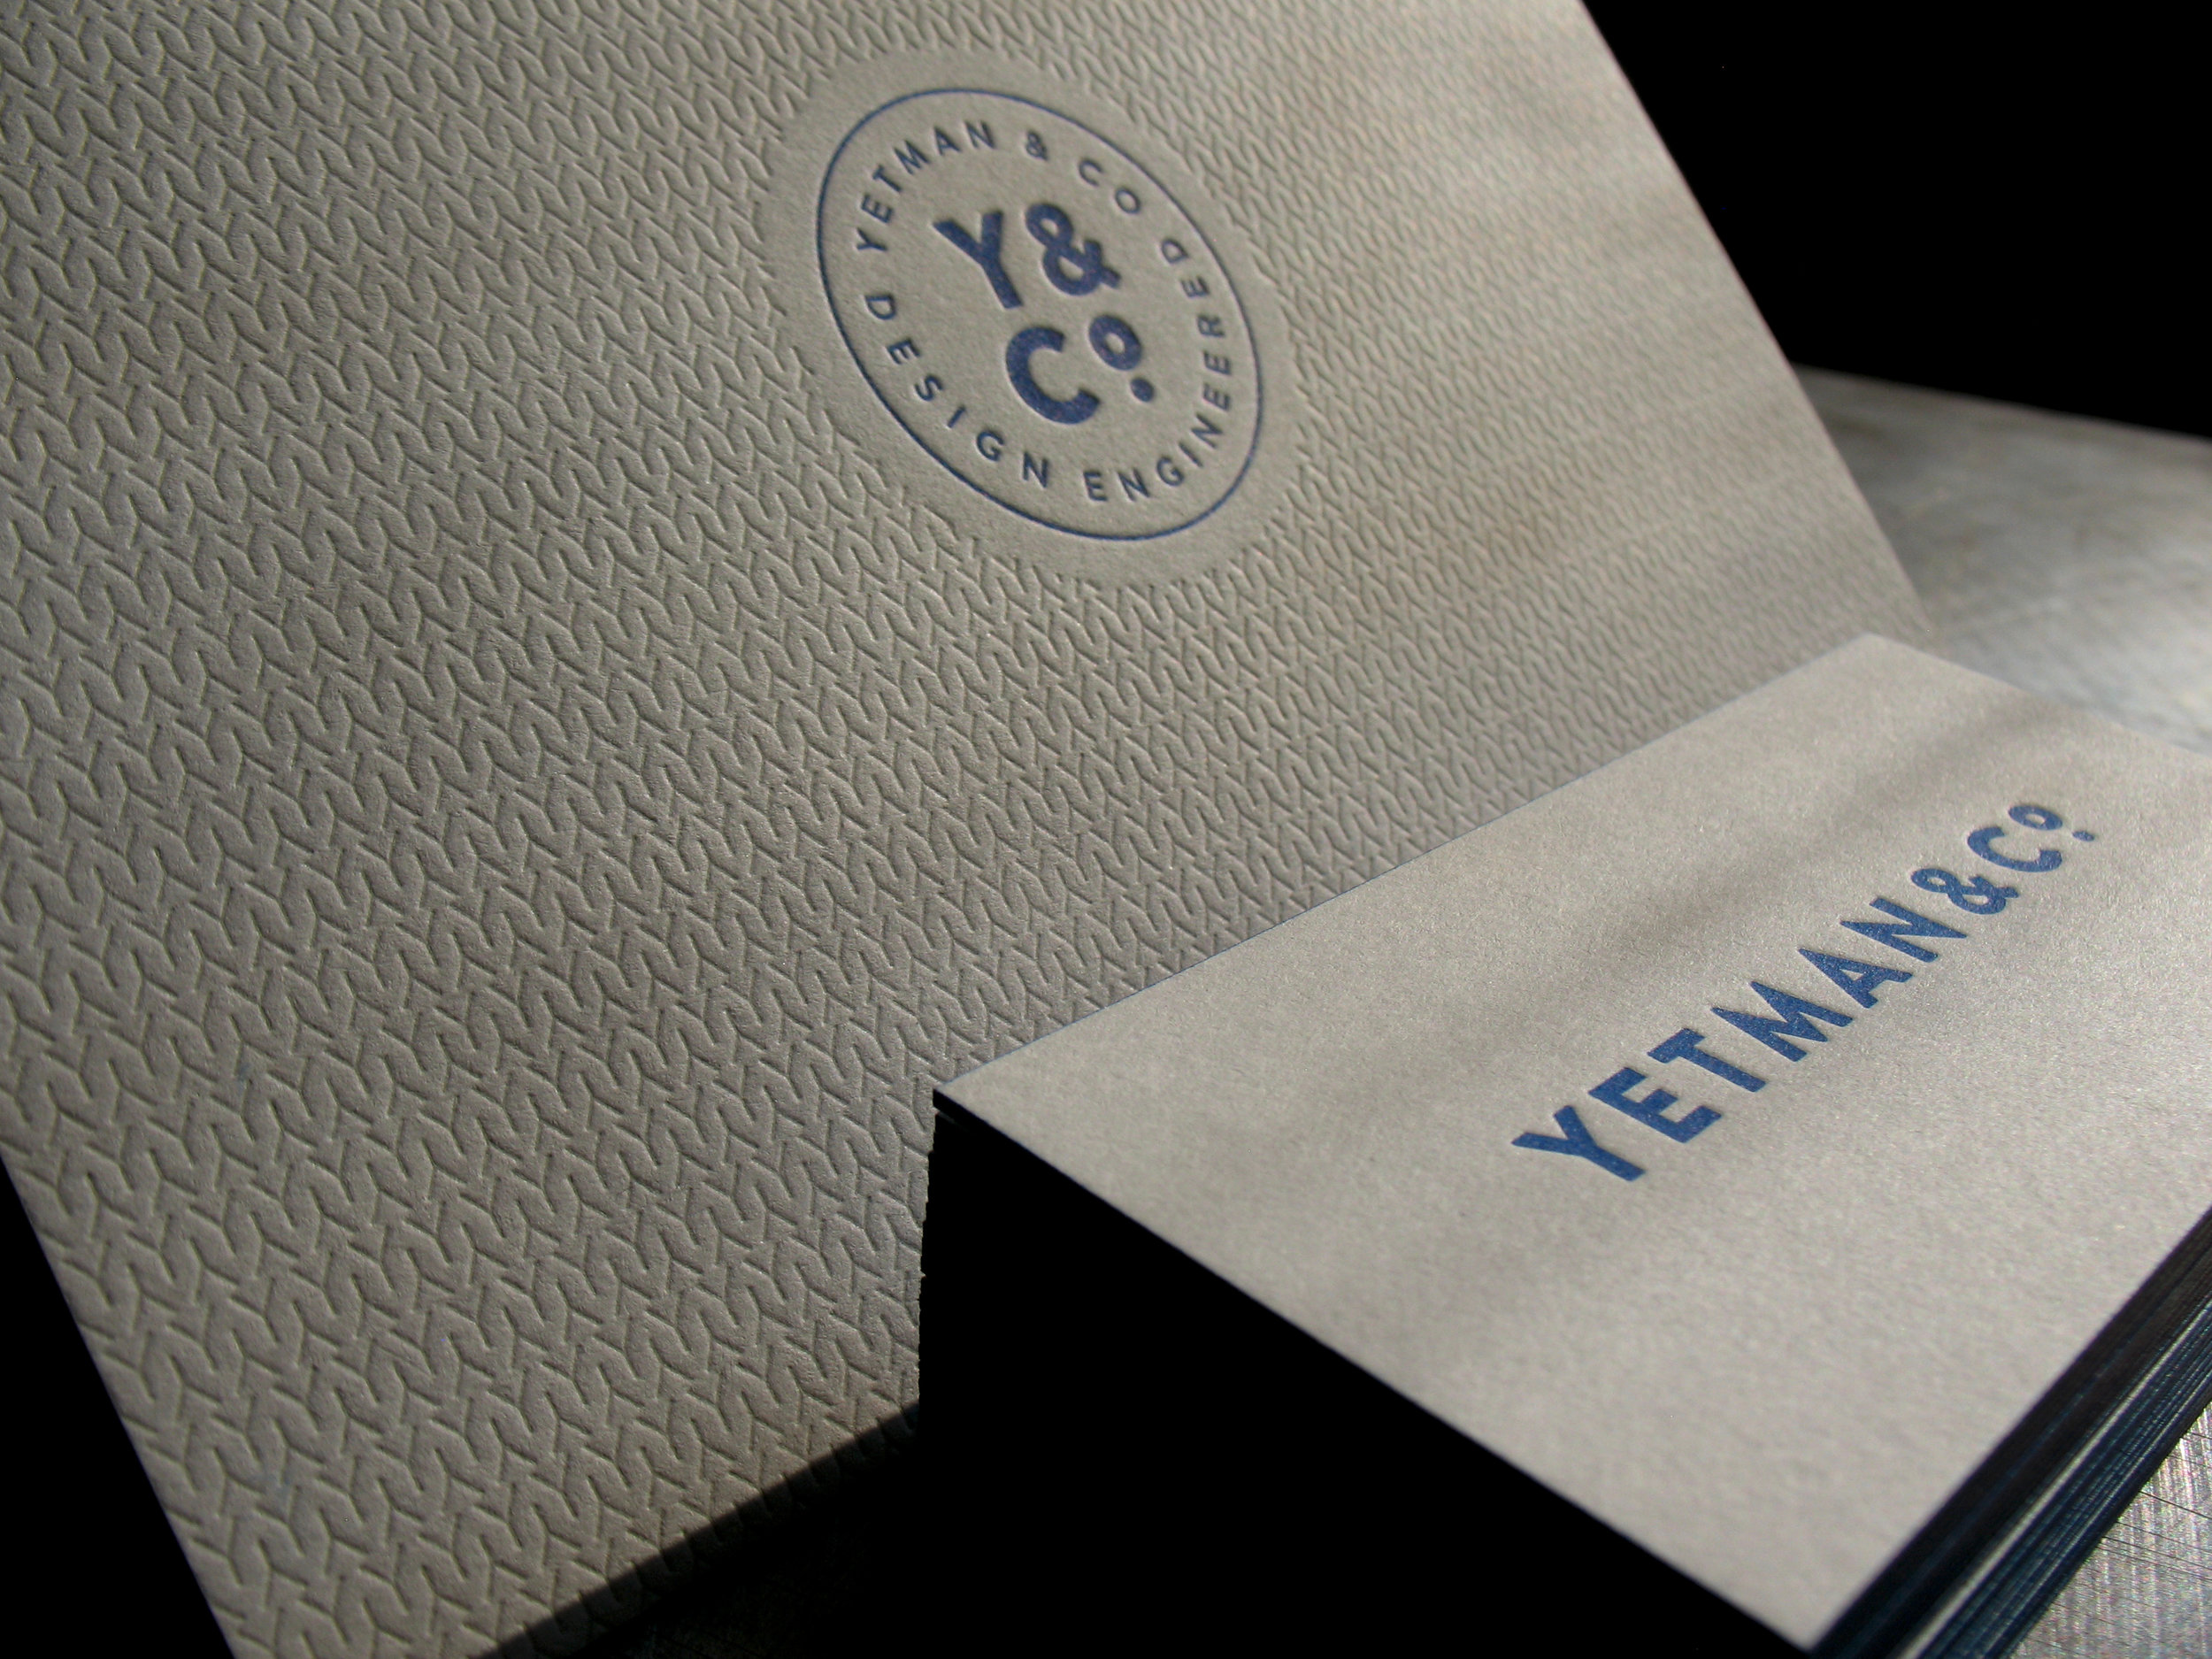 Yetman & Co. Business Card and Note Card